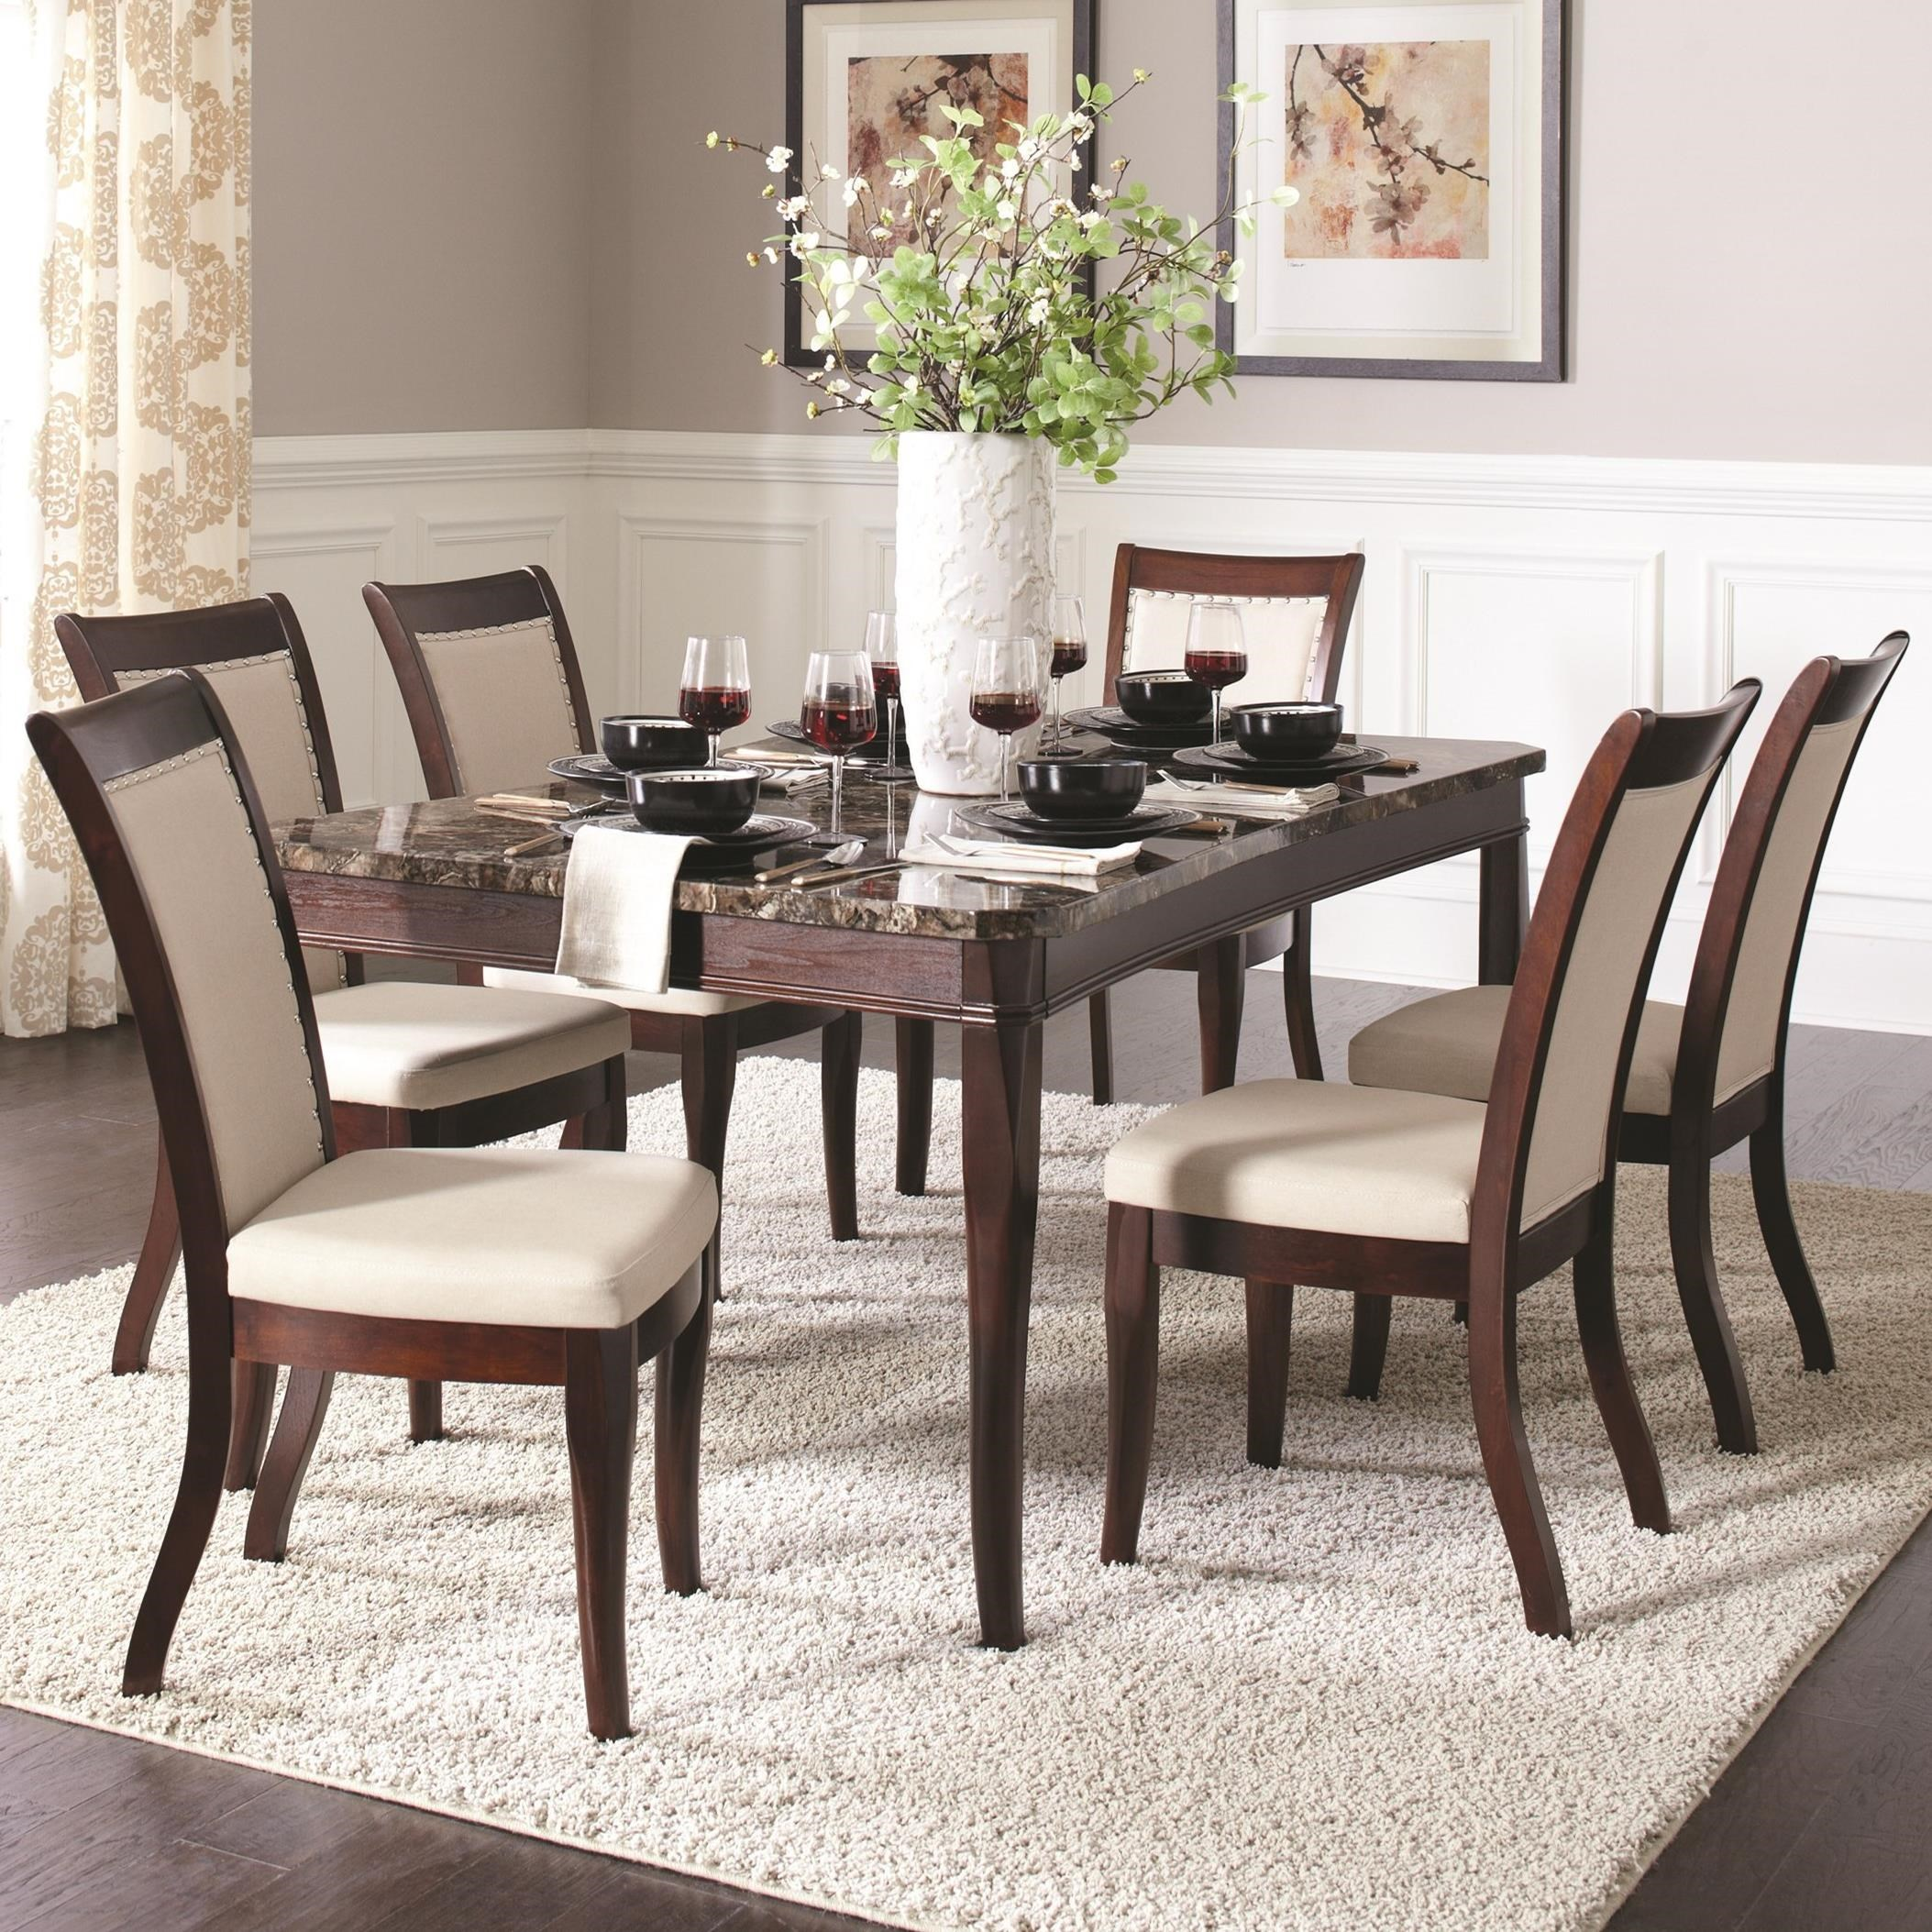 Dining Room Sets Dallas Tx: Coaster Cornett 7pc Dark Brown Dining Table Set Dallas TX